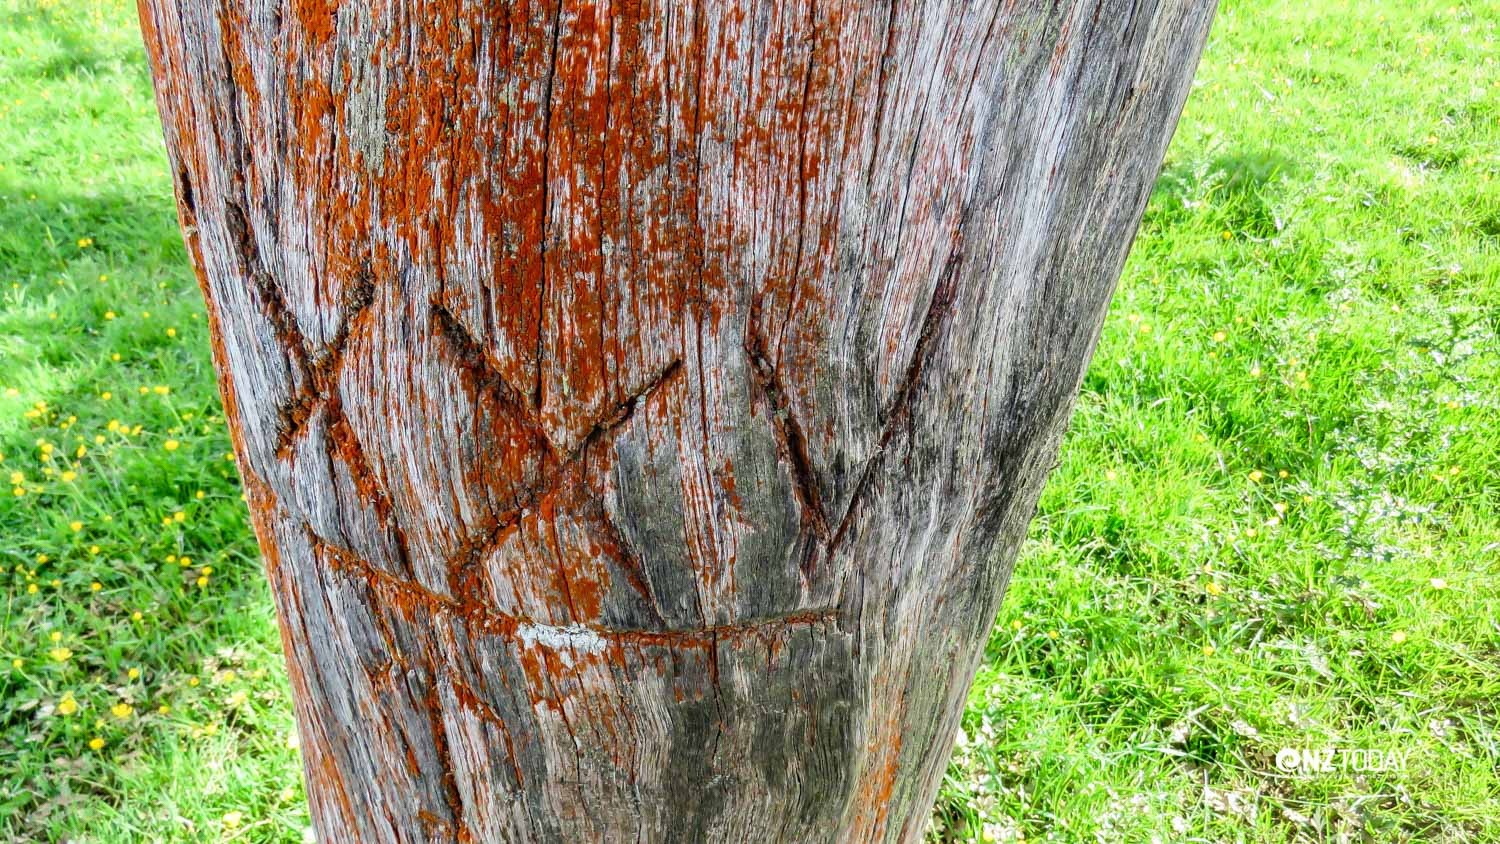 There are many construction markings on the timber